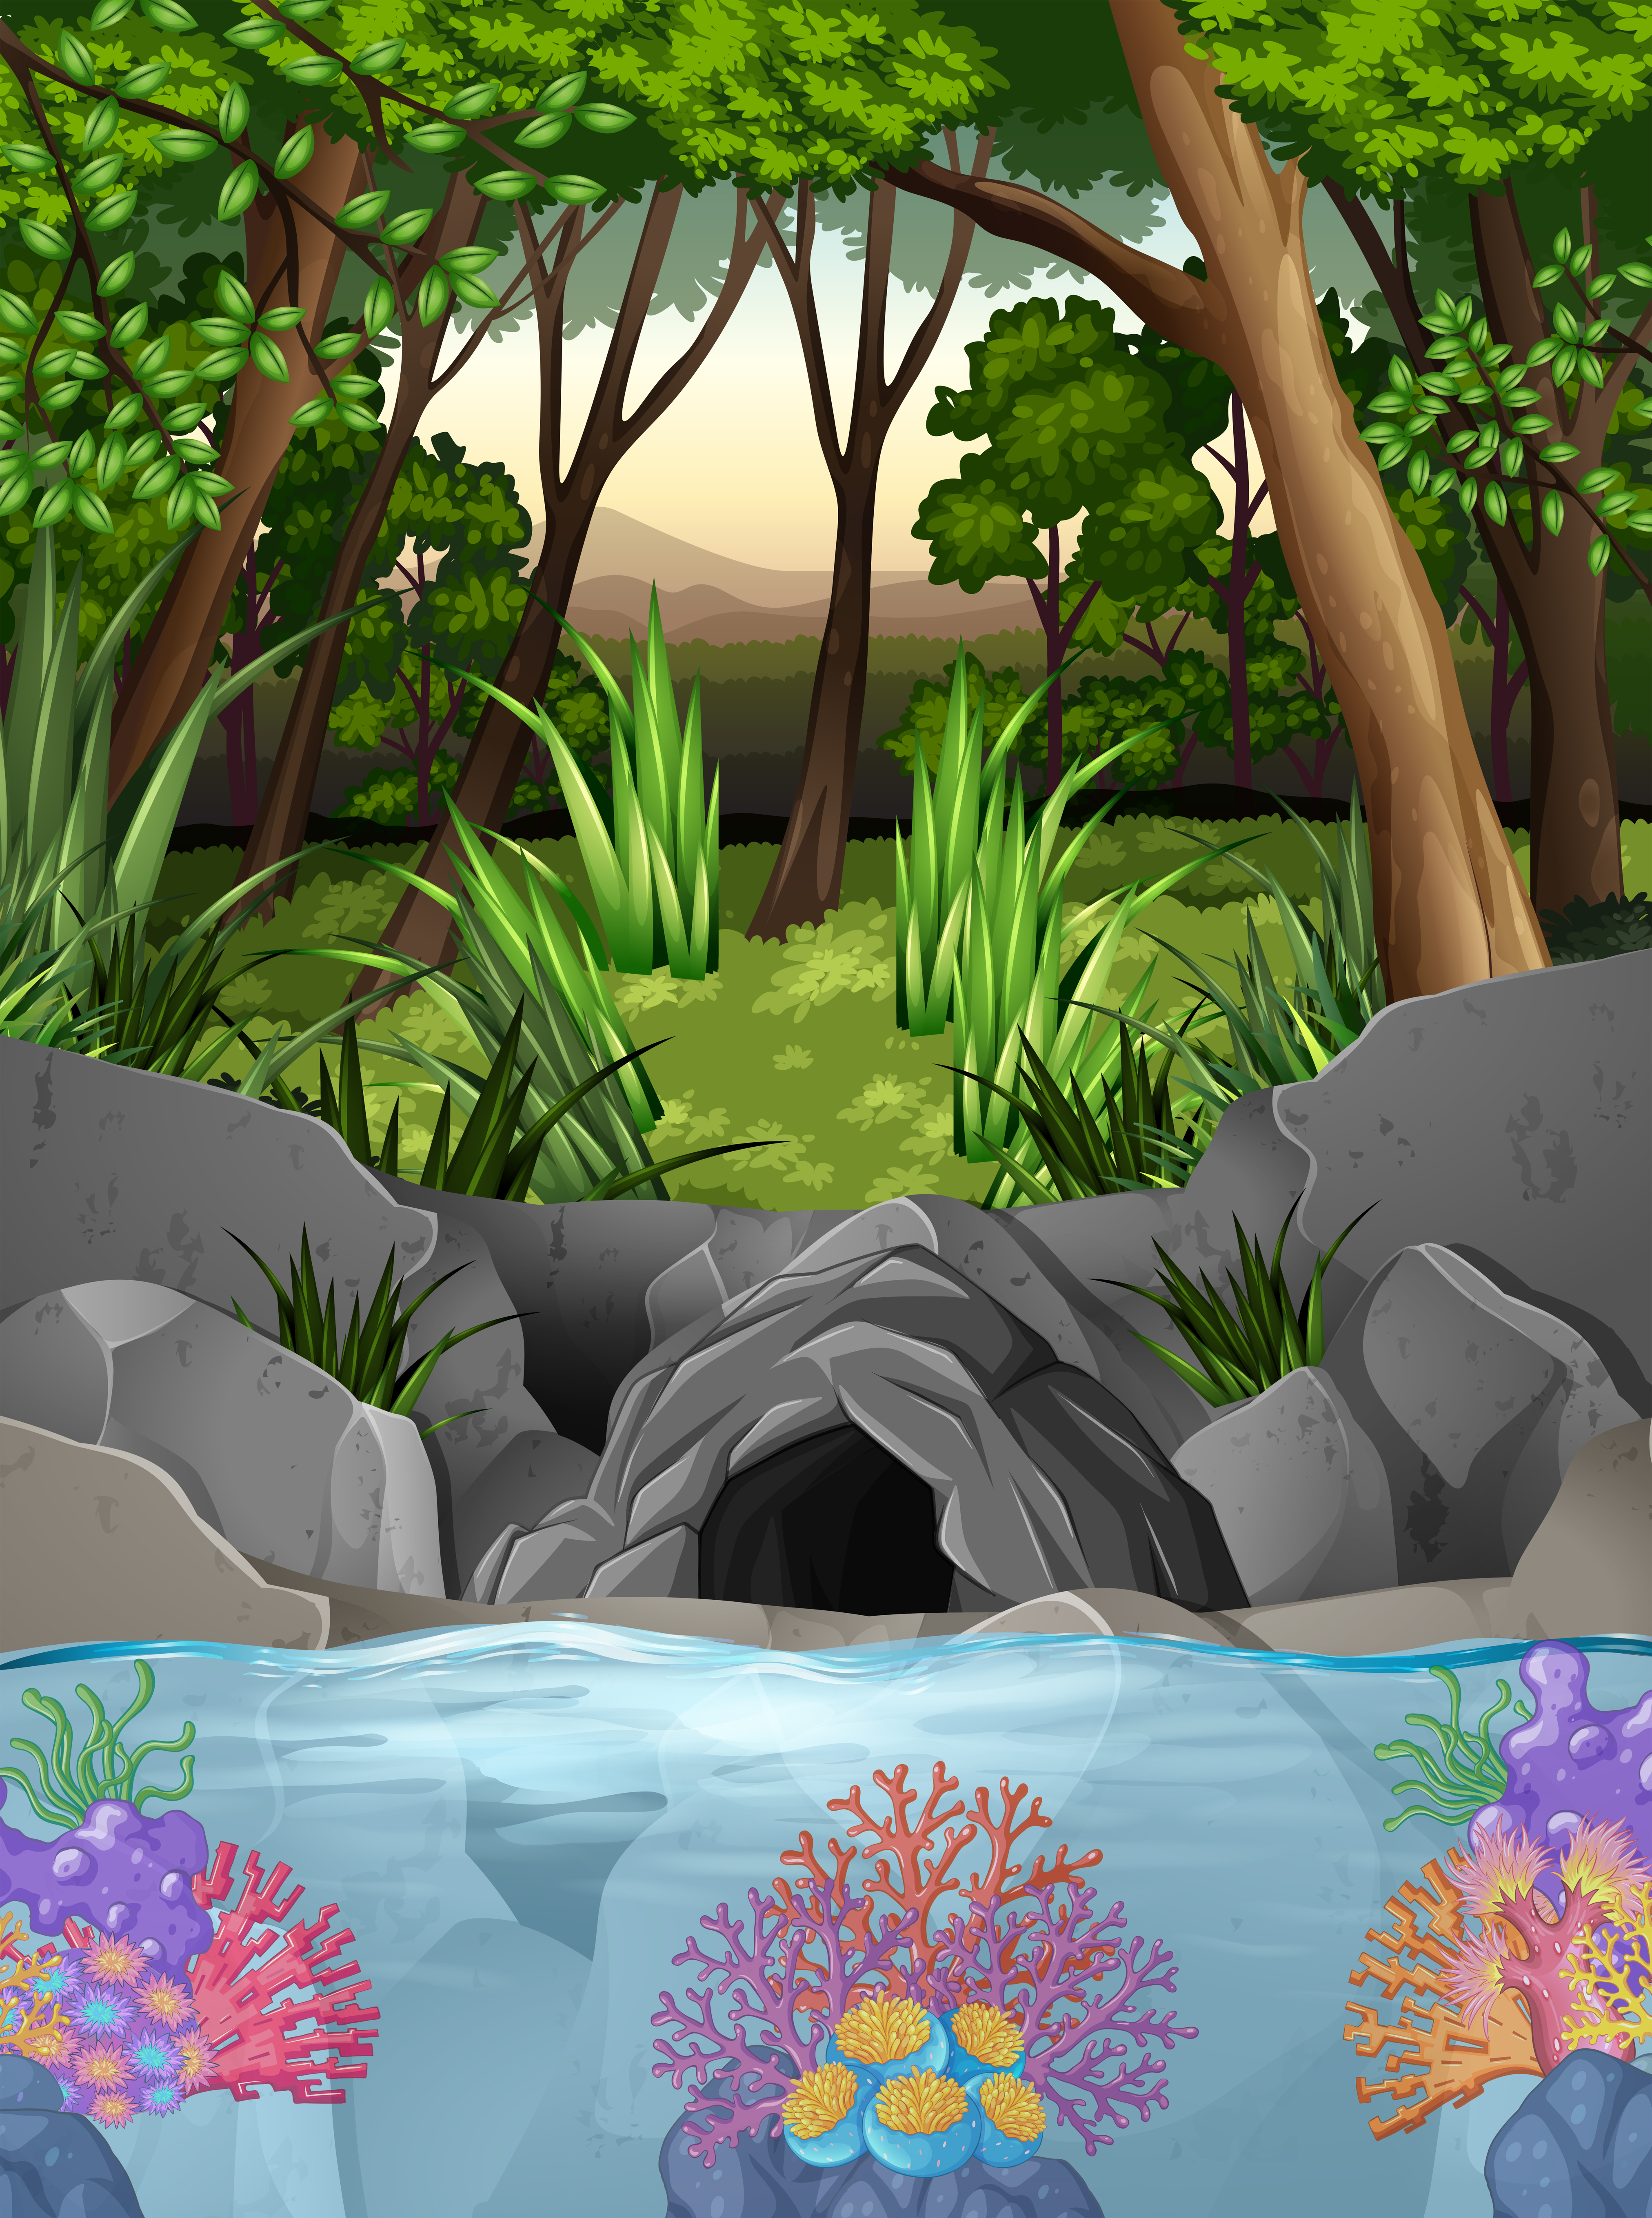 Forest Scene With Cave And Trees Download Free Vectors